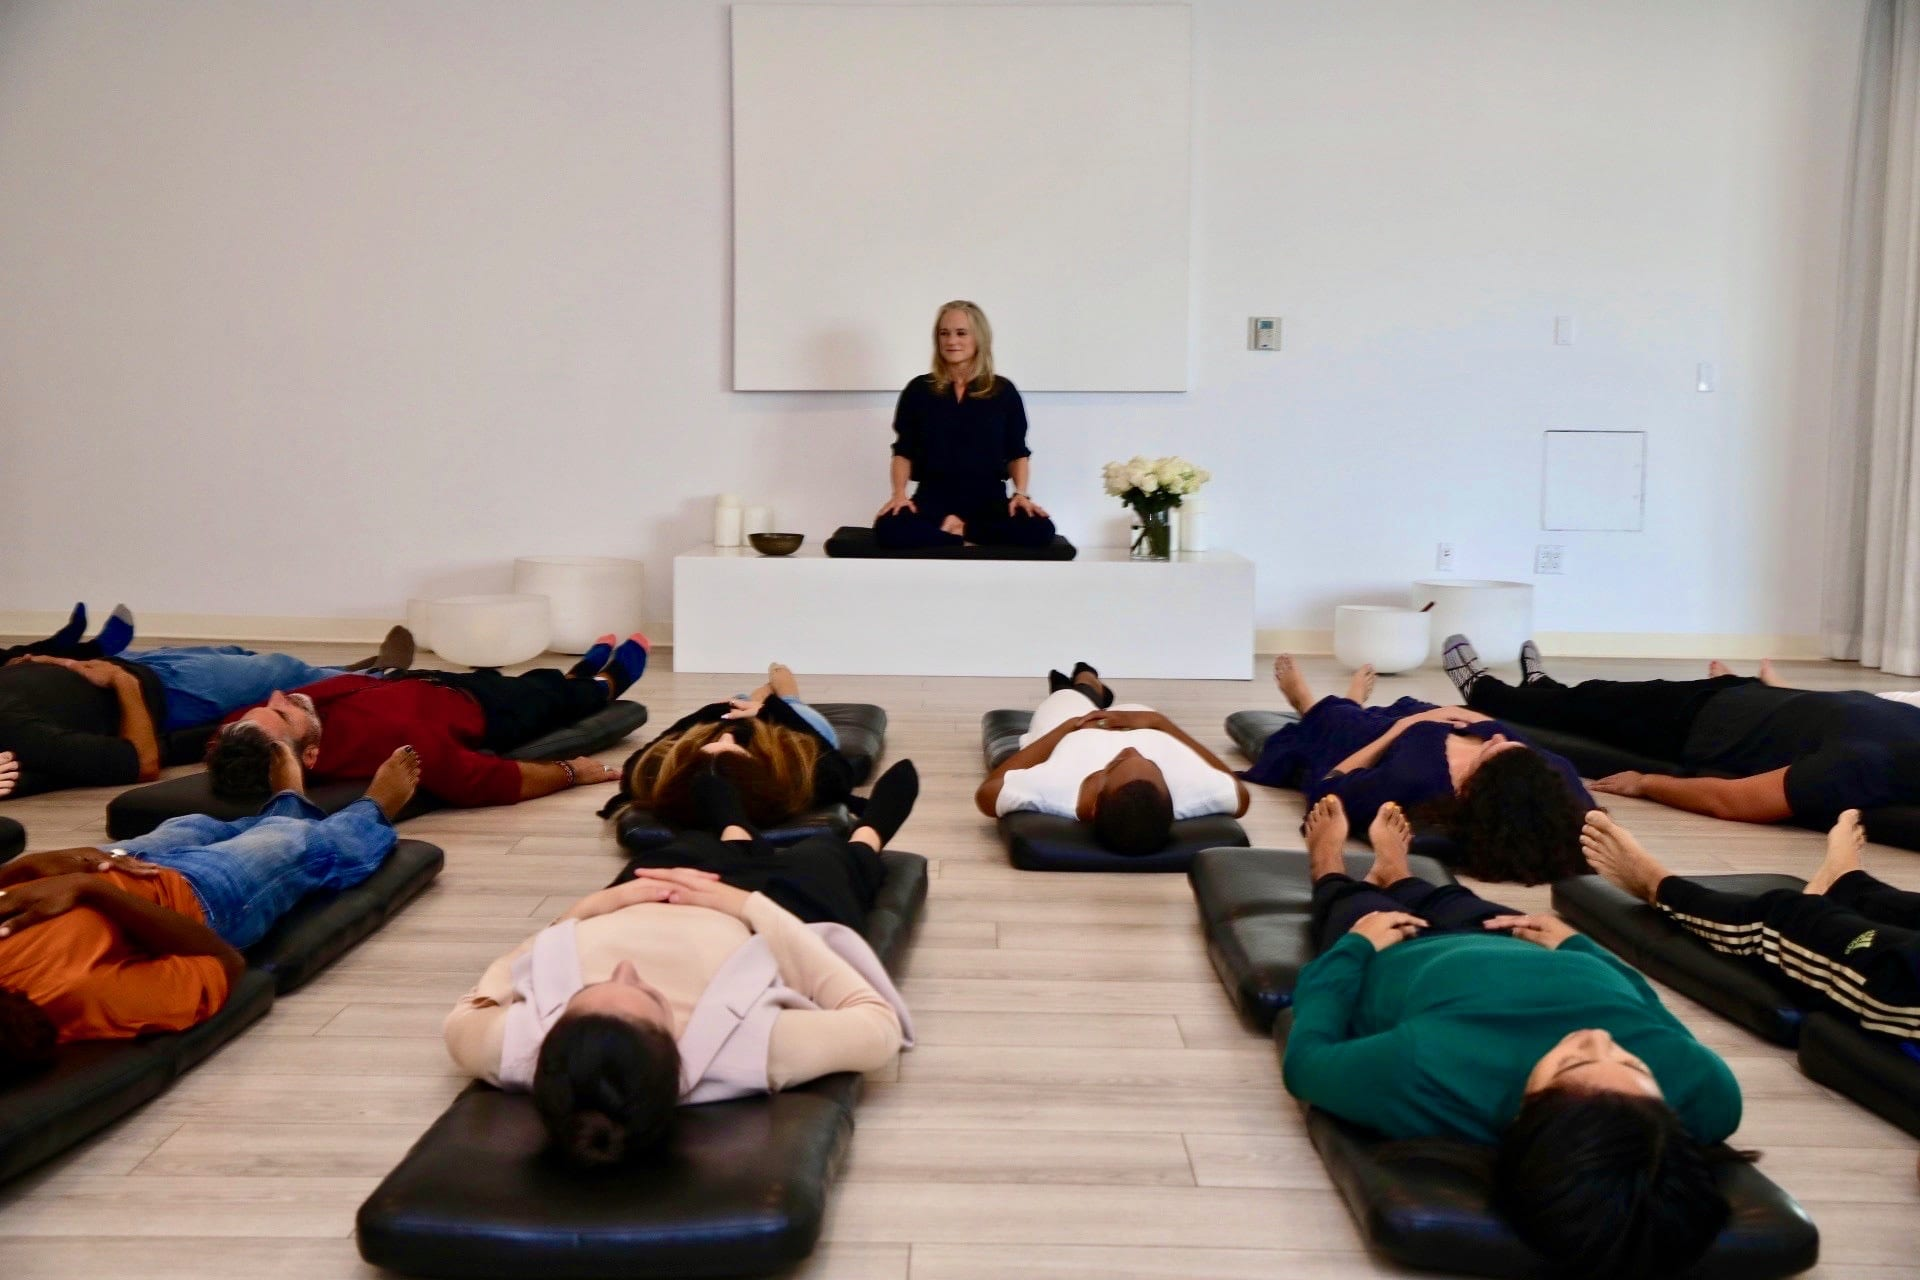 Heather Hayward is leading a guided meditation session